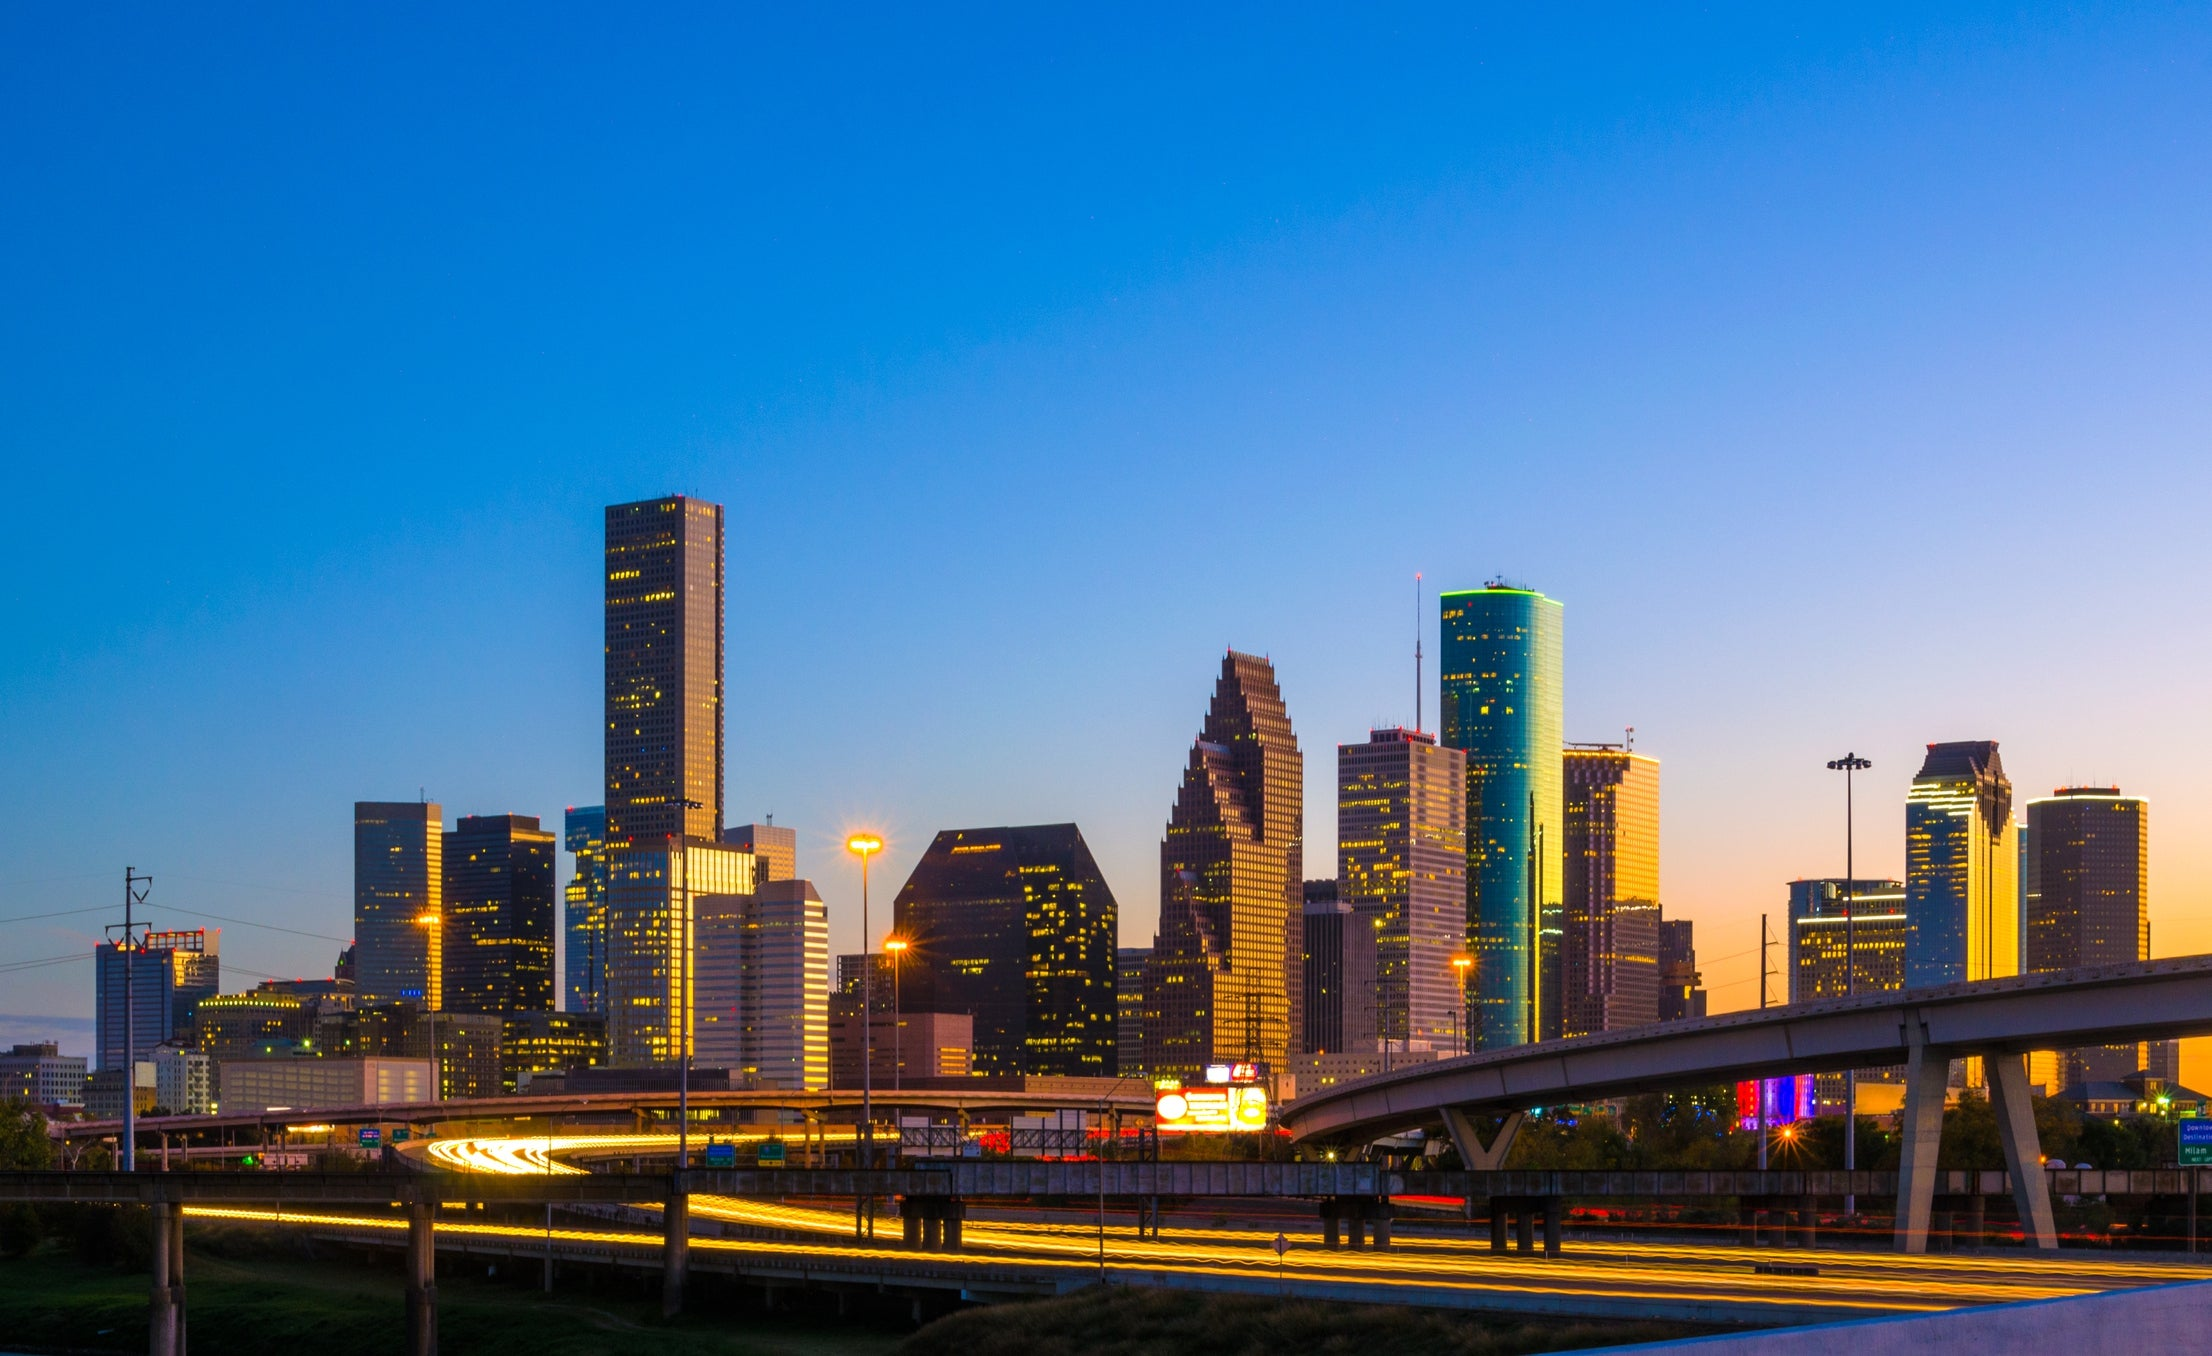 Houston: Rebounding bigger and better after a hurricane